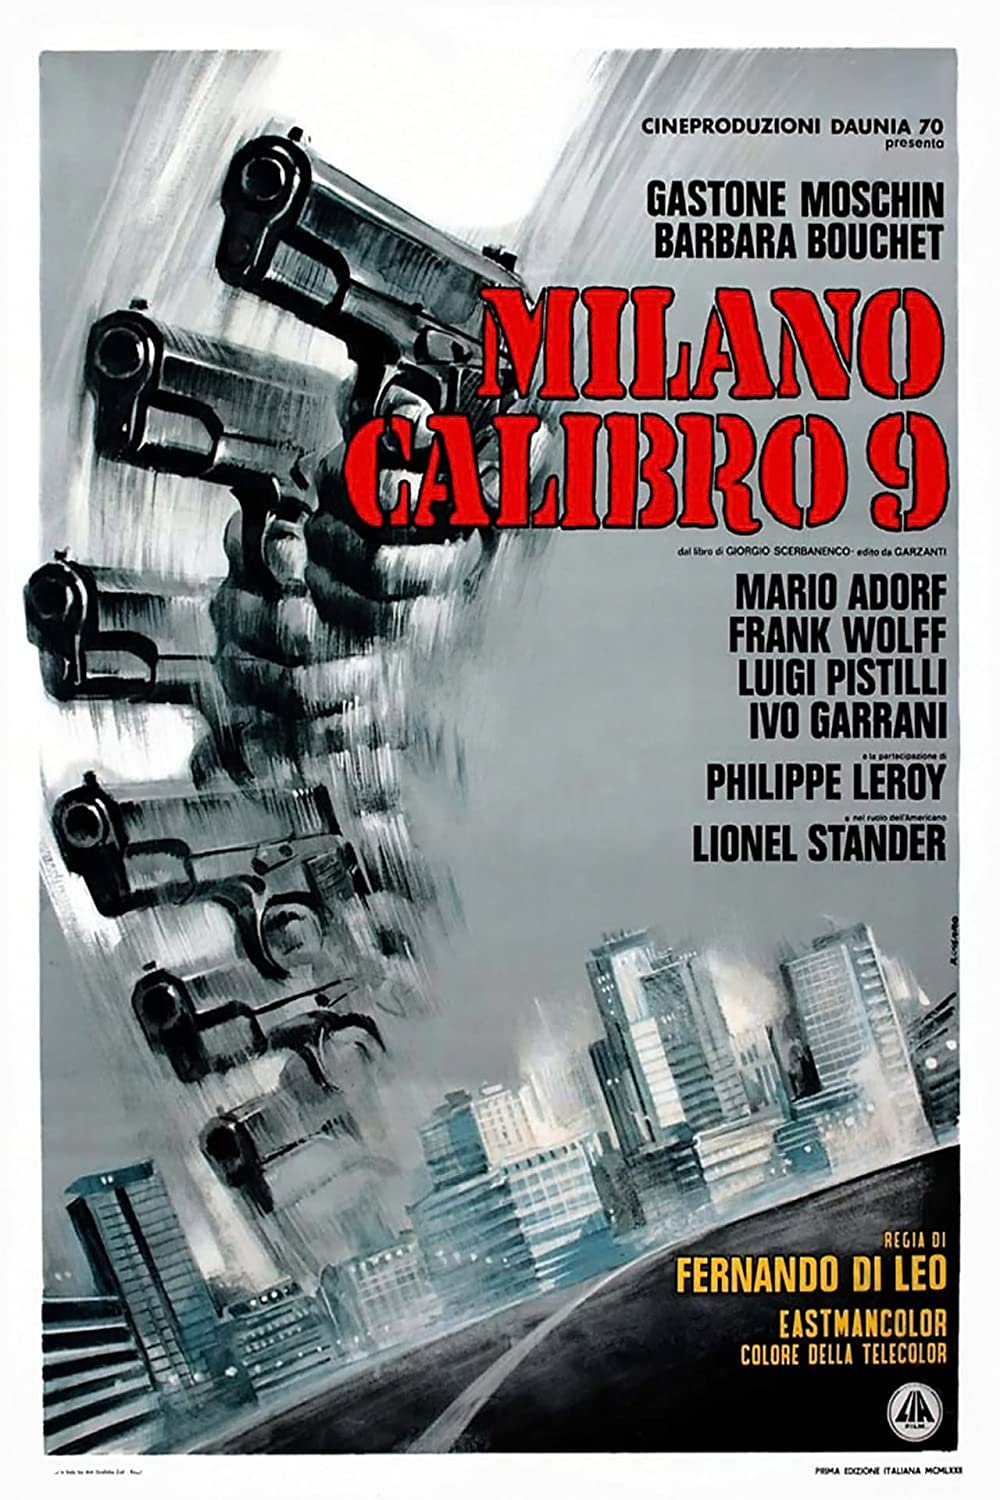 Milano Kaliber 9: Directed by Fernando Di Leo. With Gastone Moschin, Barbara Bouchet, Mario Adorf, Frank Wolff. A former gangster is forced to resume his old lifestyle when his violent, jealous ex-colleagues and the police believe that he knows the...